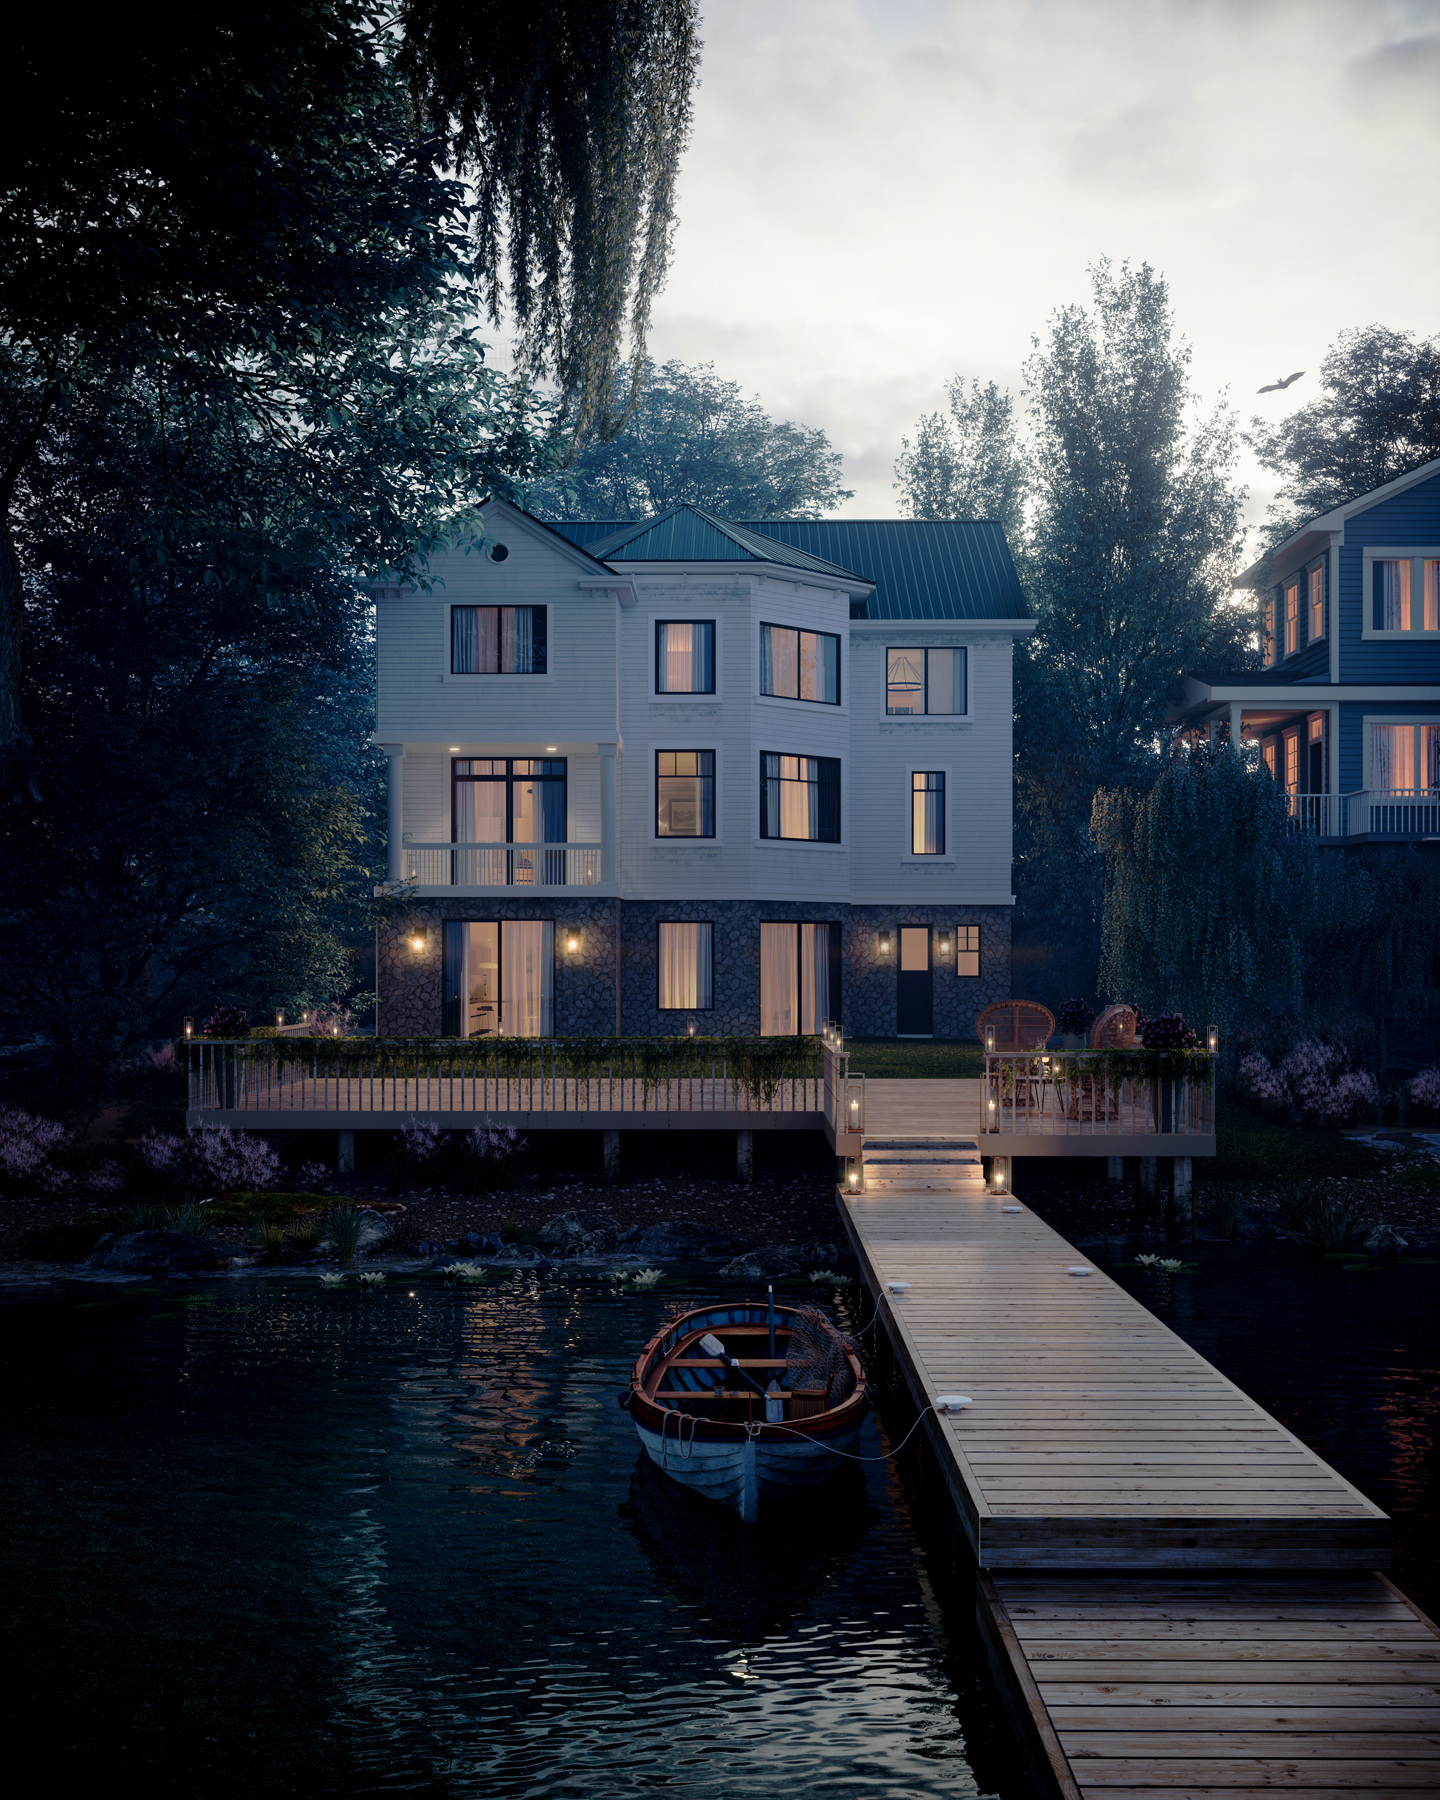 Architectural 3D house rendering with fully furbished interiors and a boat tied at the pier